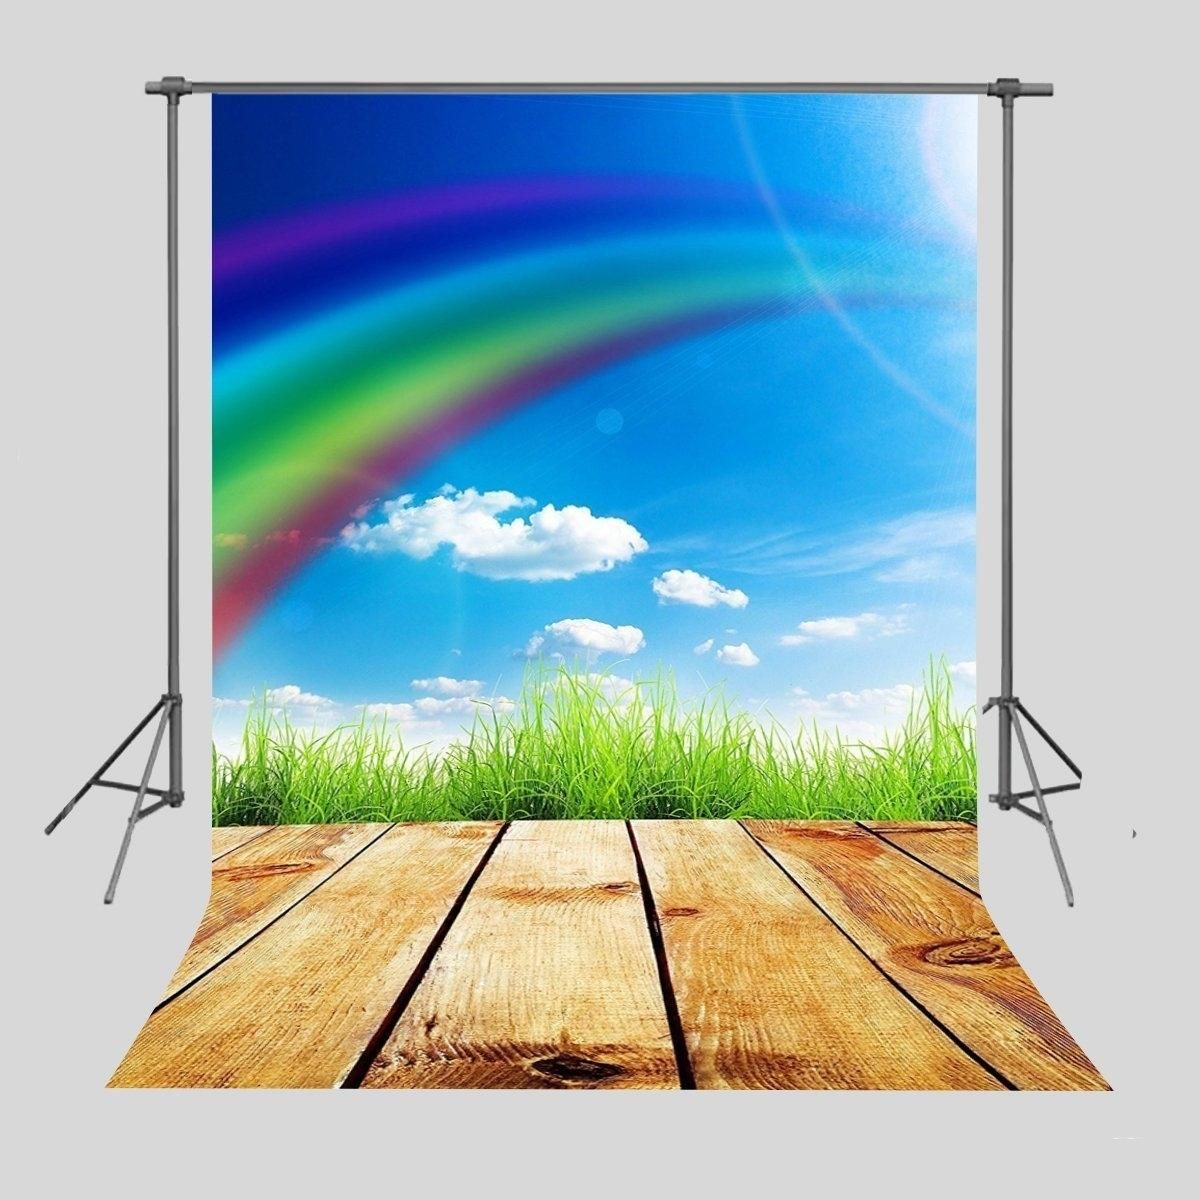 Background 5x7ft Rainbow and Wood Floor Backdrop Photo Booth Photography Props